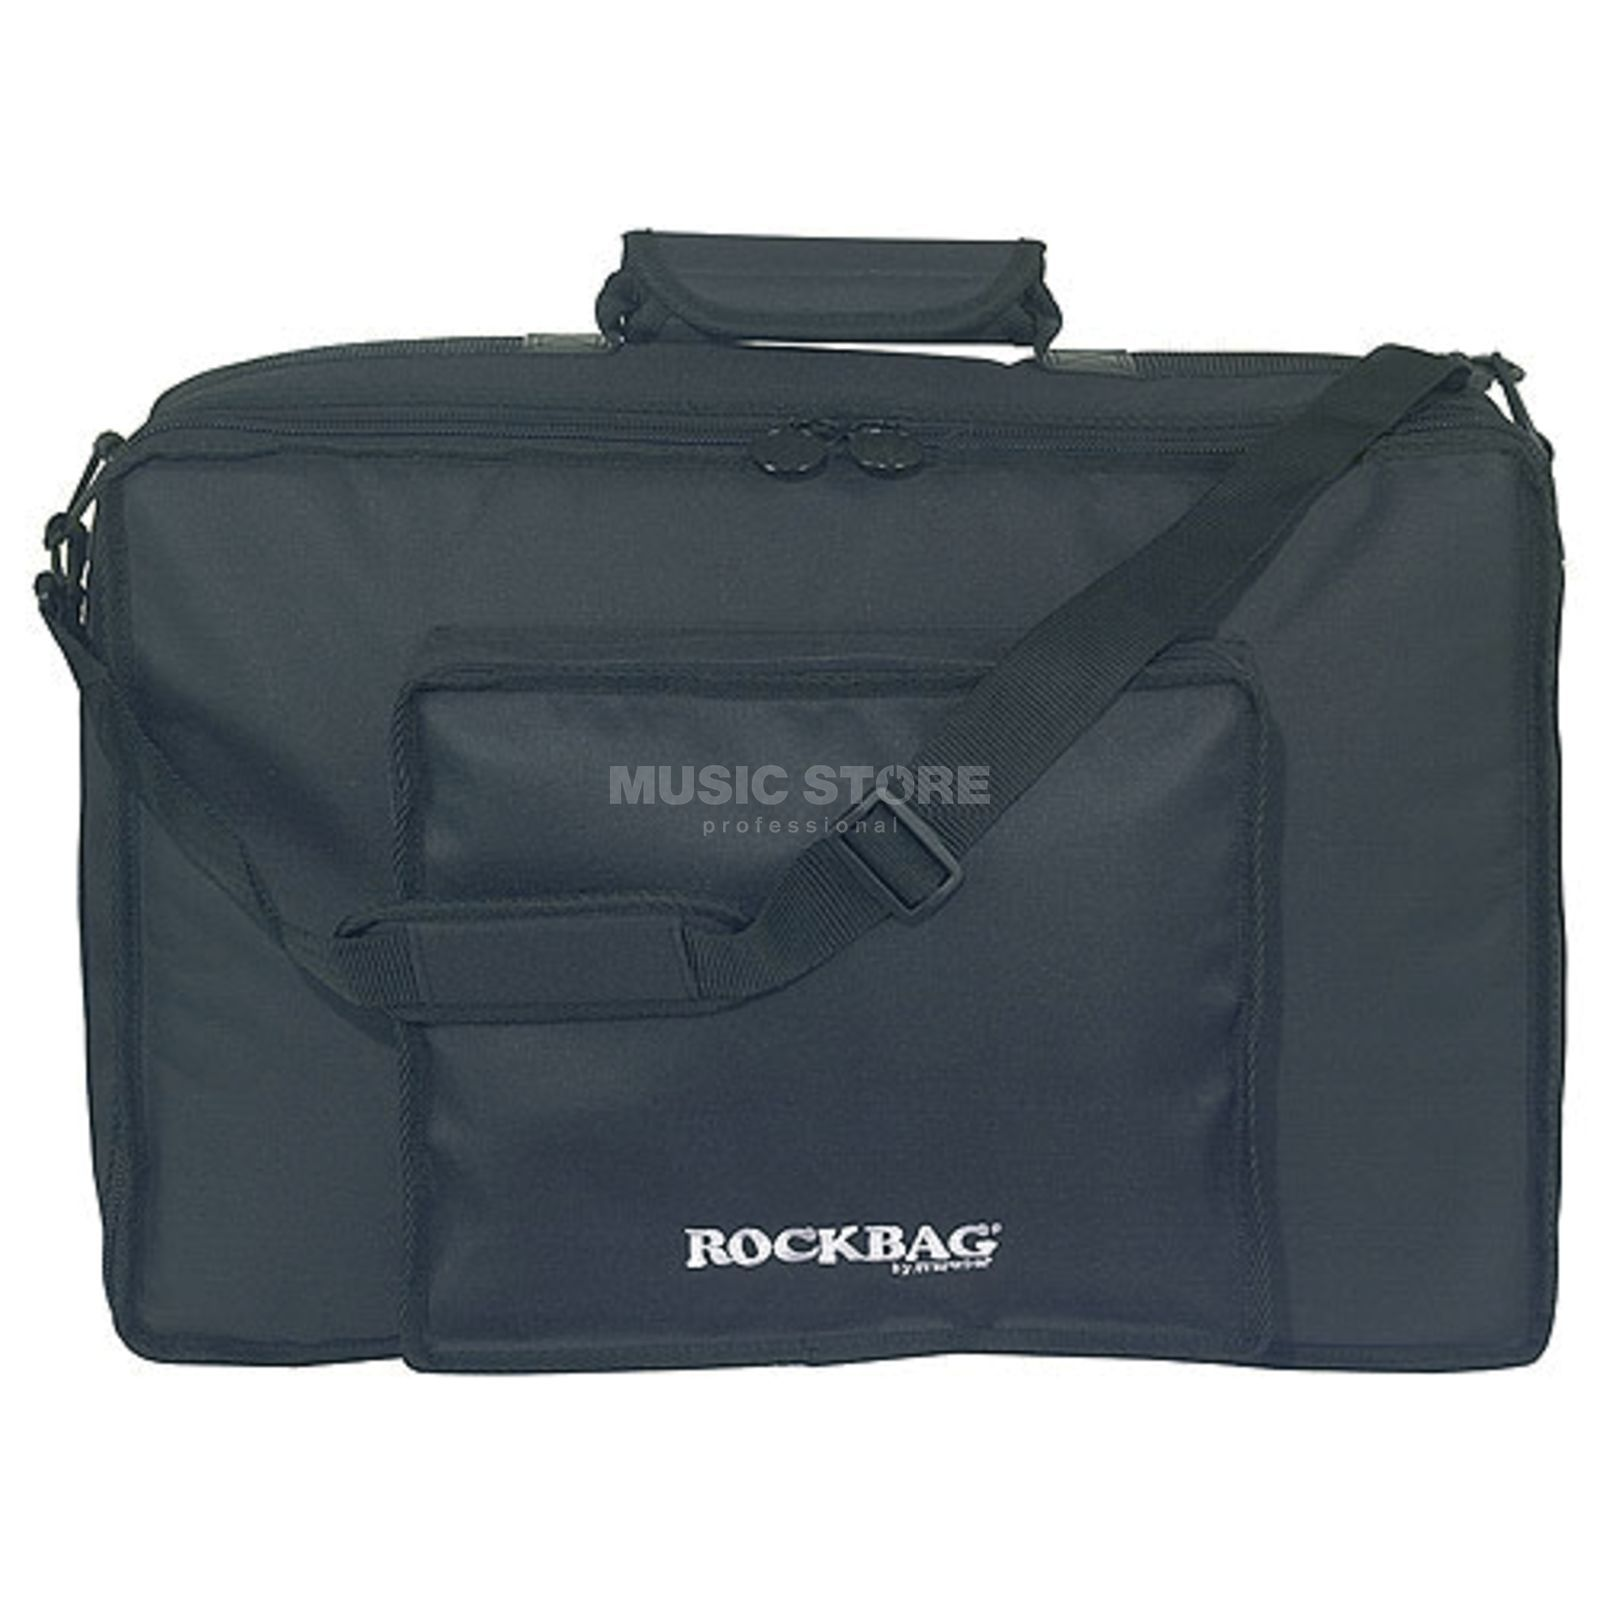 Rockbag RB 23435 B Mixer Bag 490 x 310 x 110mm Produktbillede